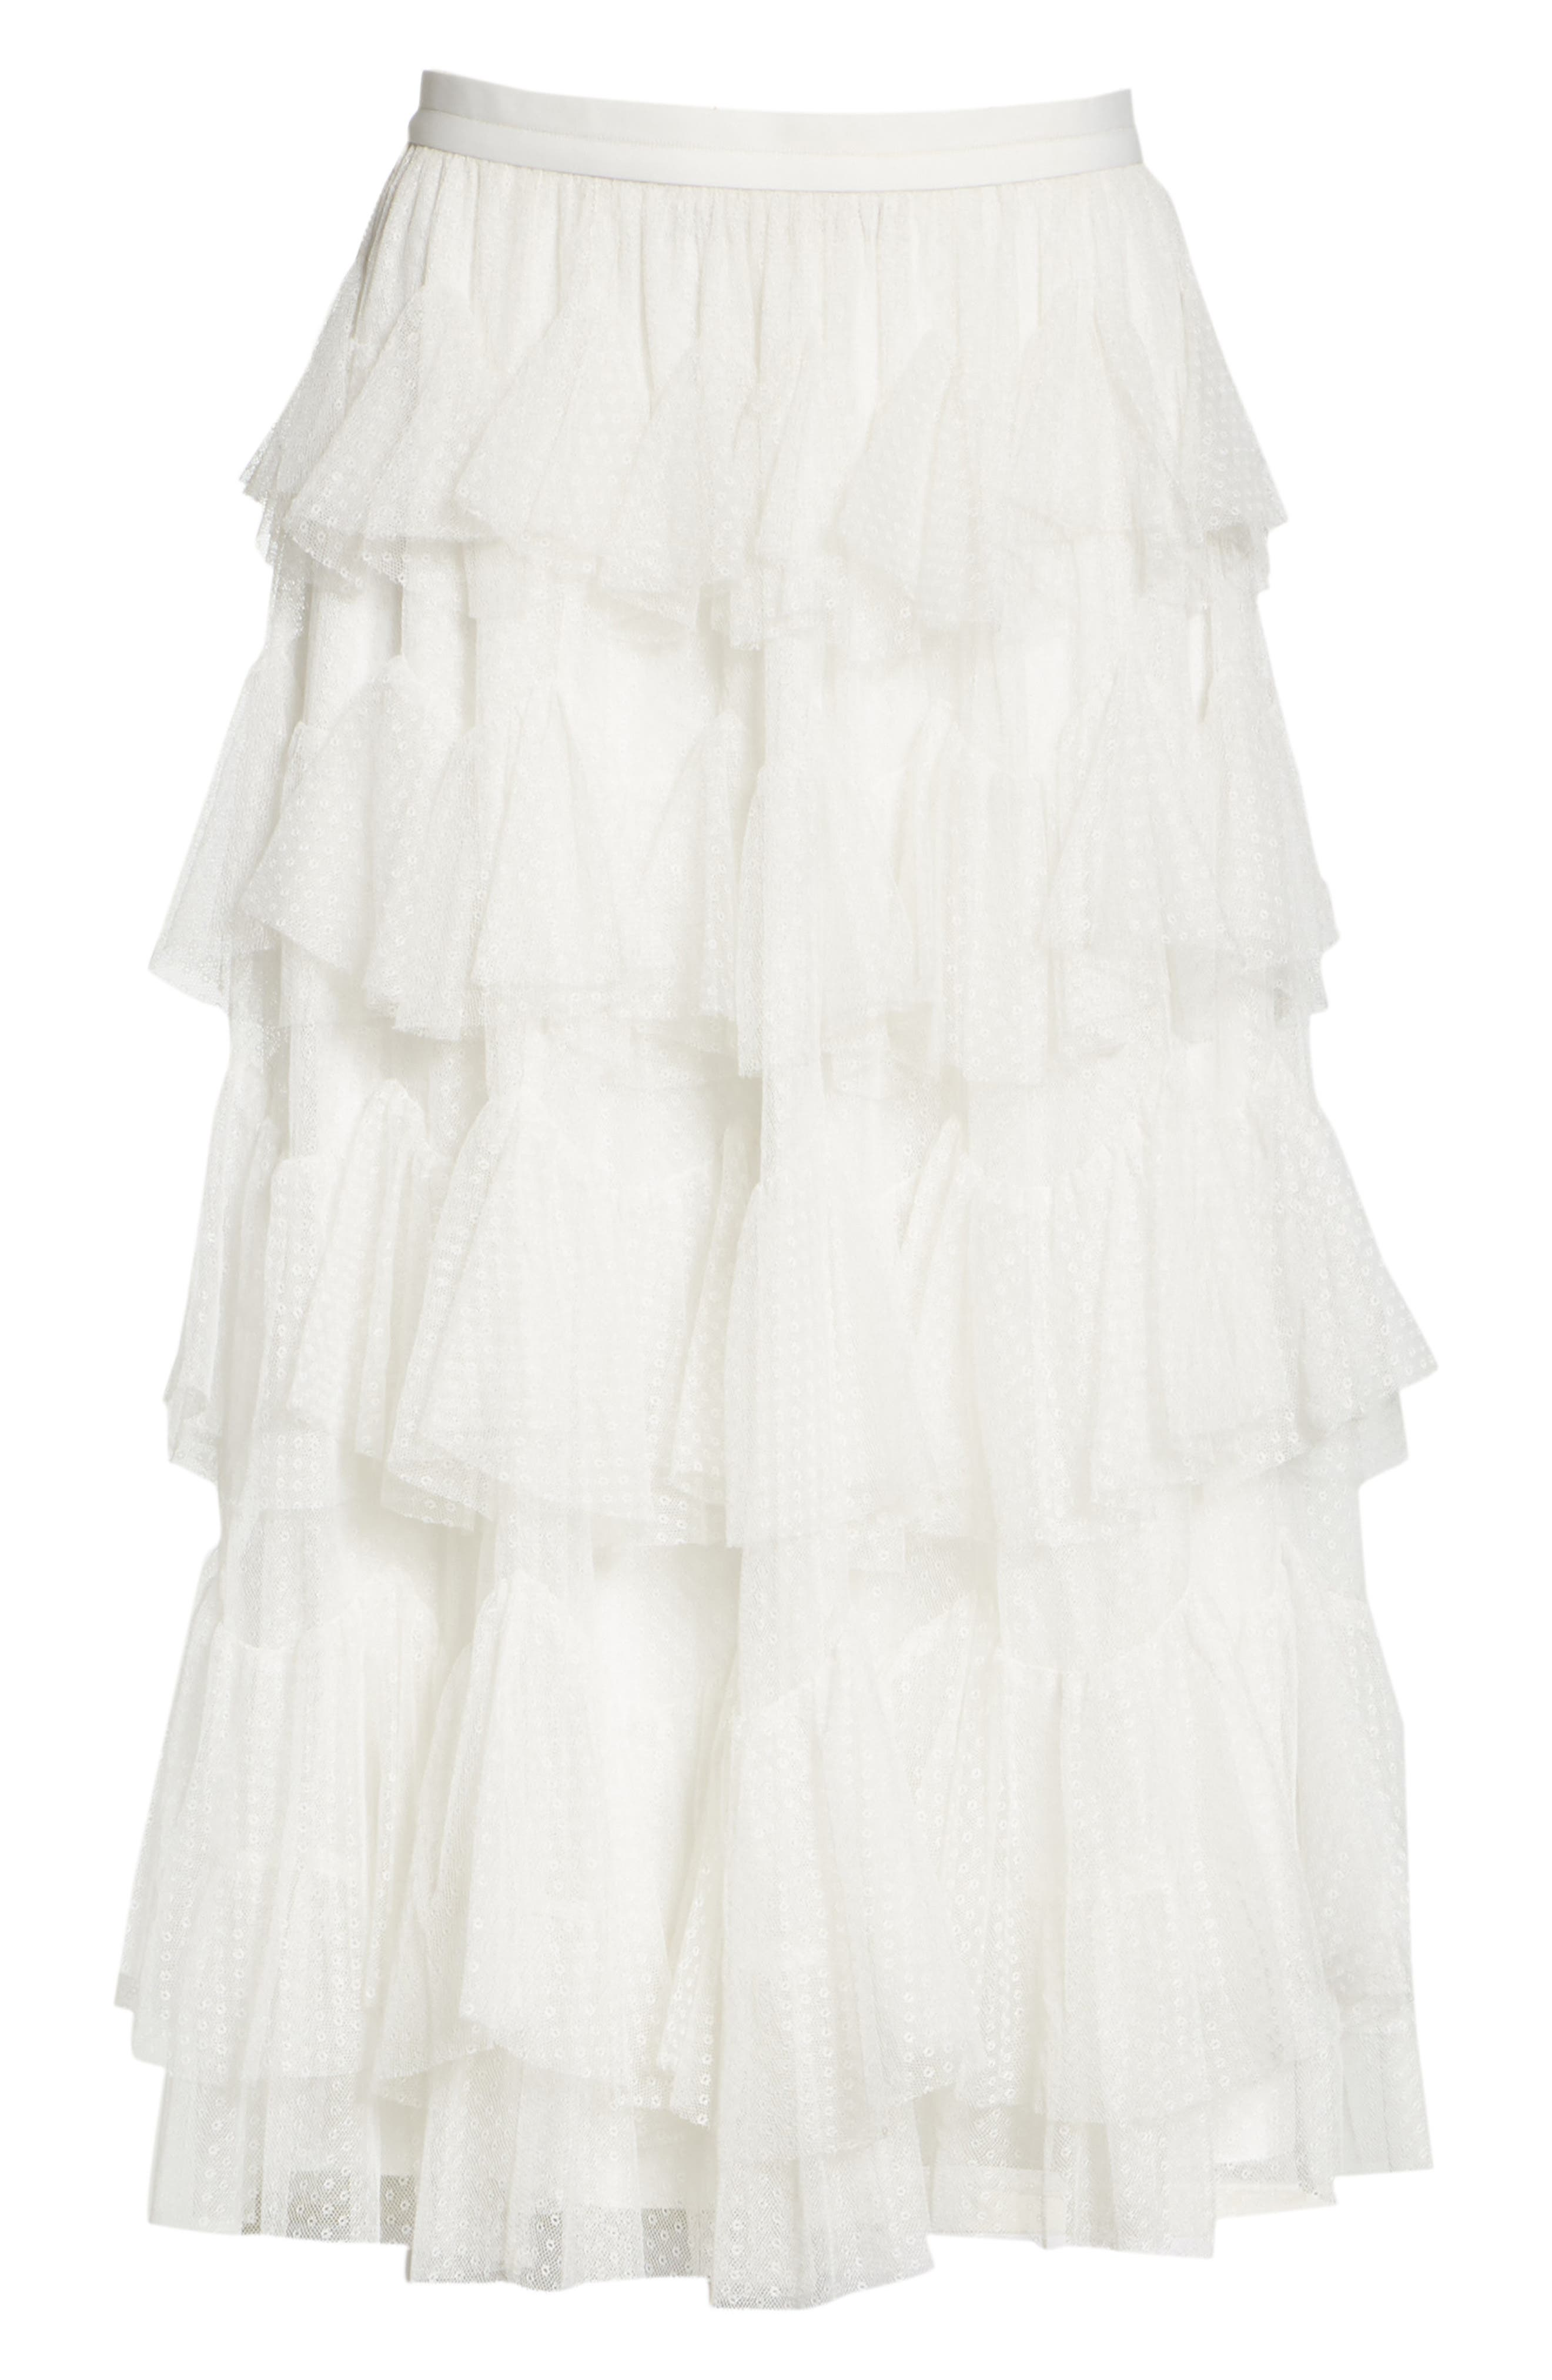 Tiered Tulle Skirt,                             Alternate thumbnail 6, color,                             102